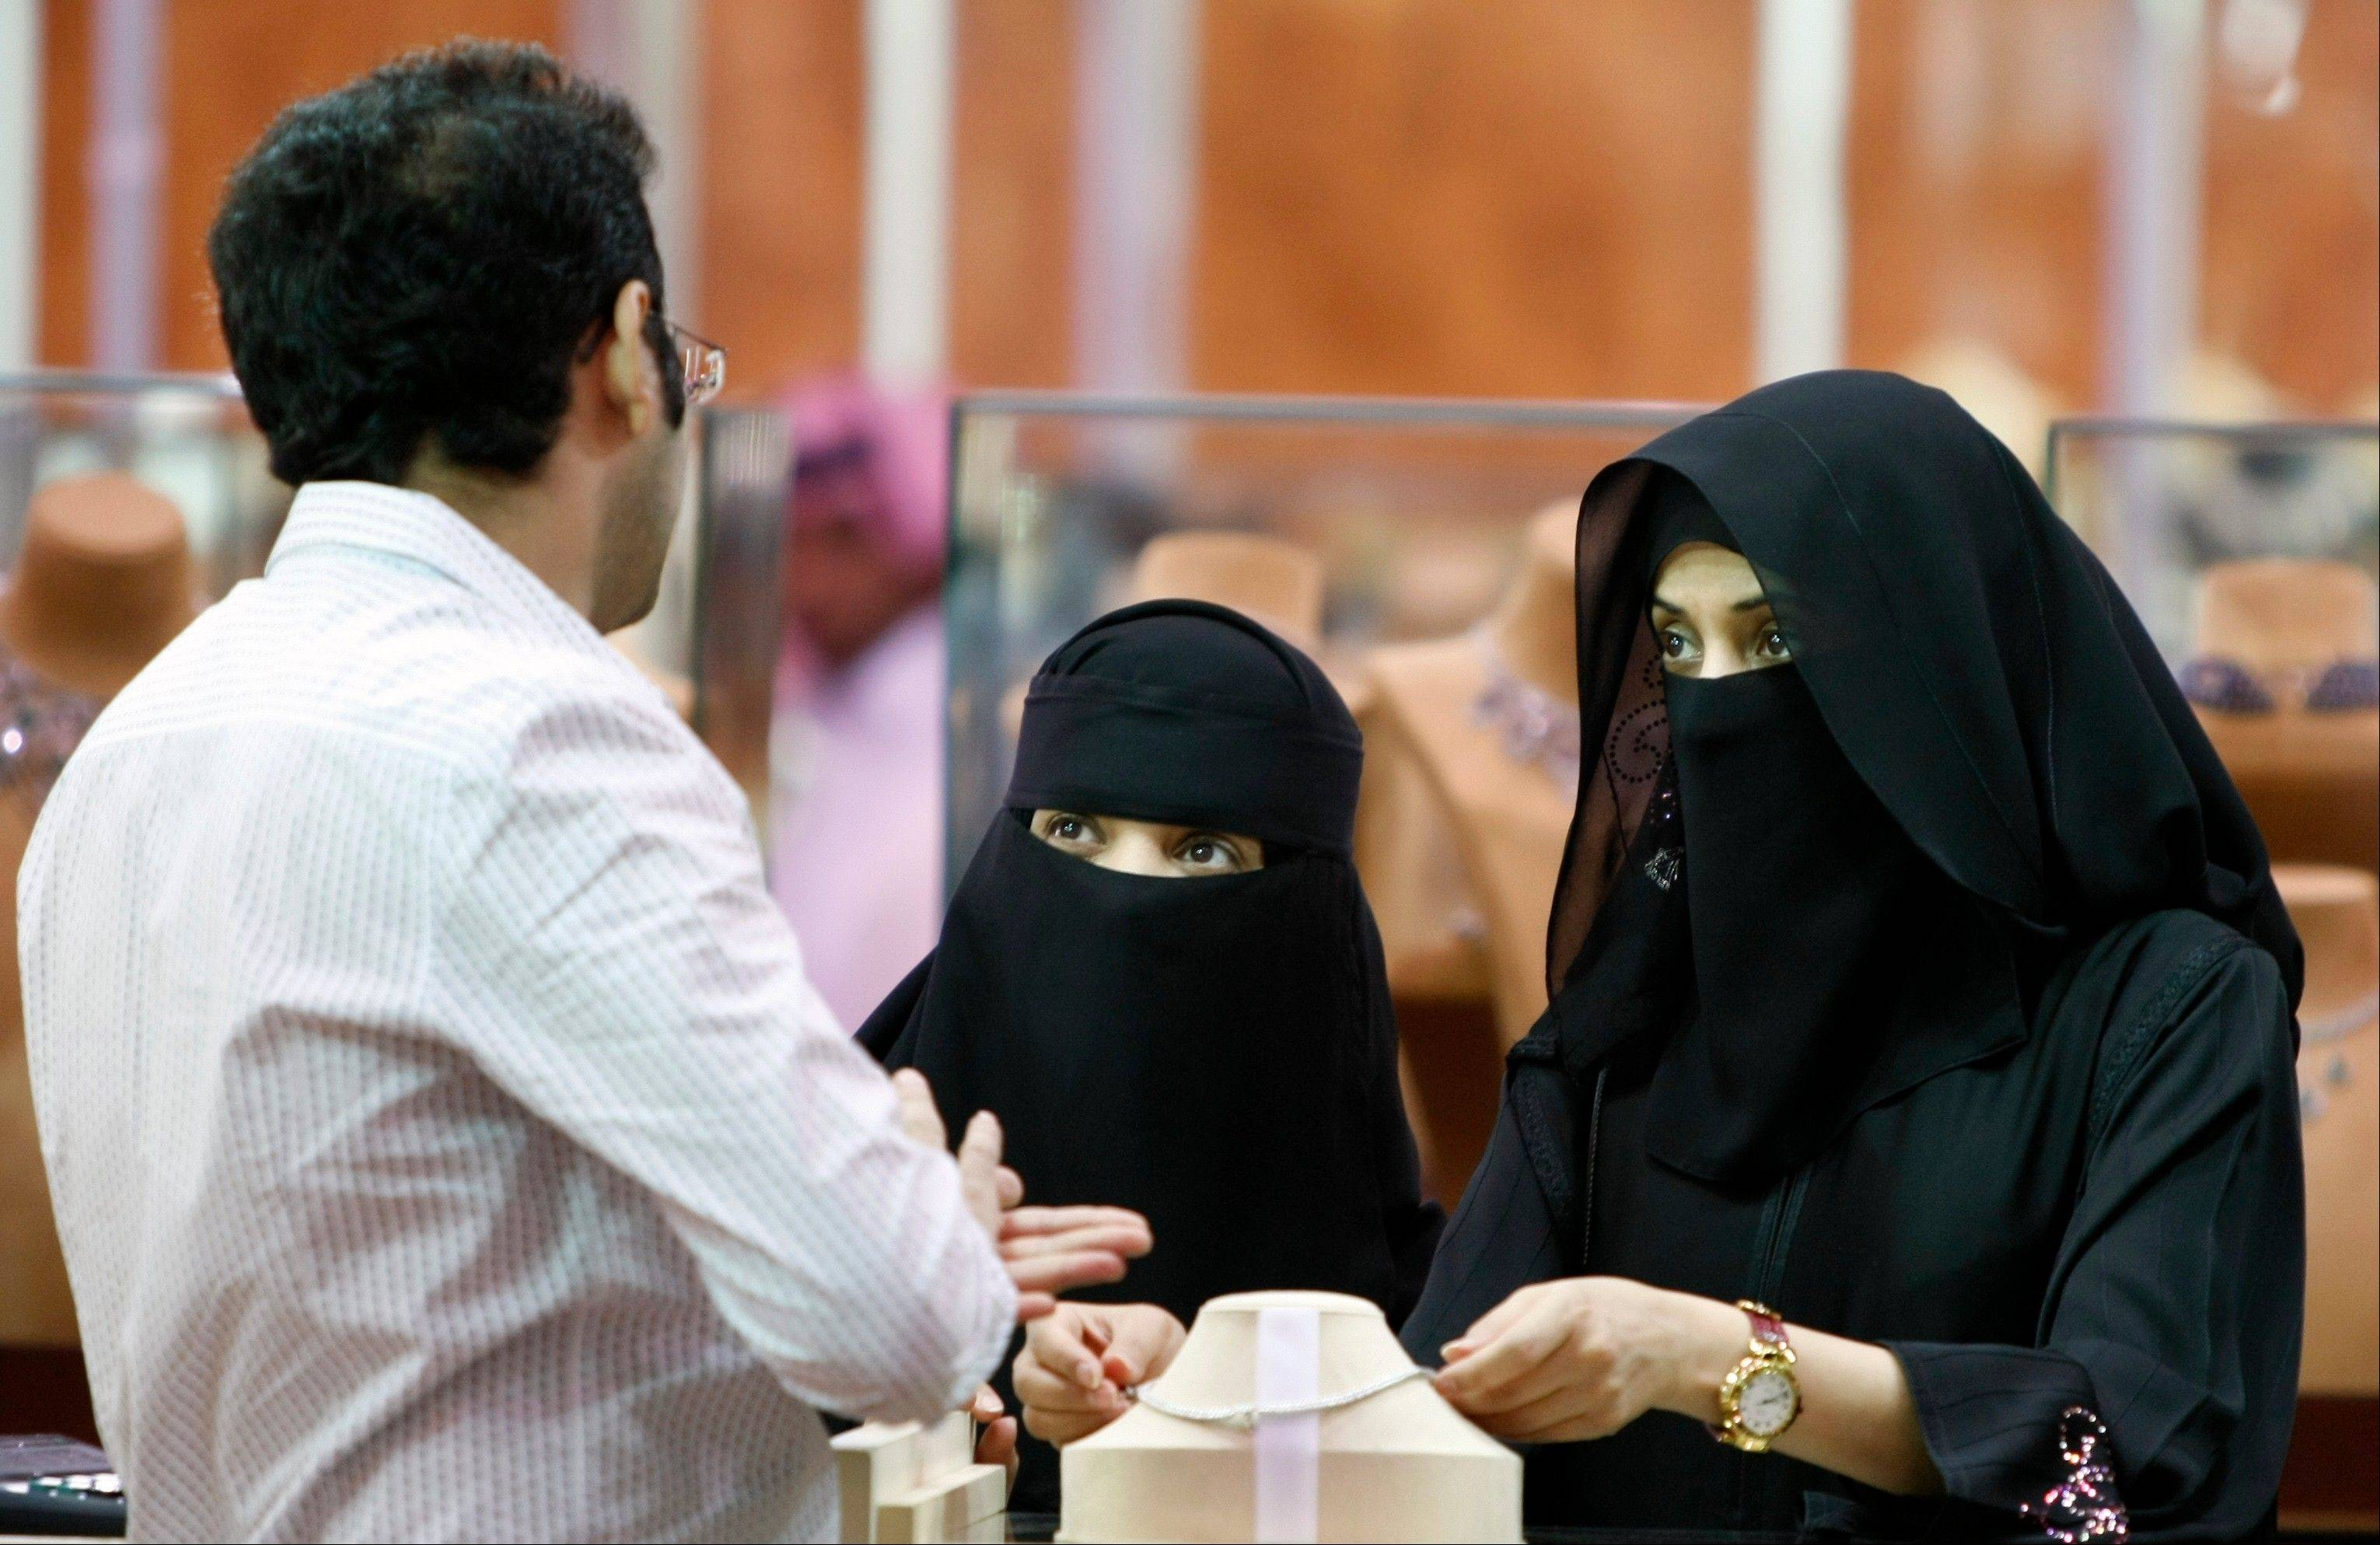 Saudi women look at jewelry at a gold fair in Riyadh, Saudi Arabia. With global attention focused on upheaval elsewhere in the Middle East, Saudi Arabia quietly intensified its clampdown on dissent in 2013.